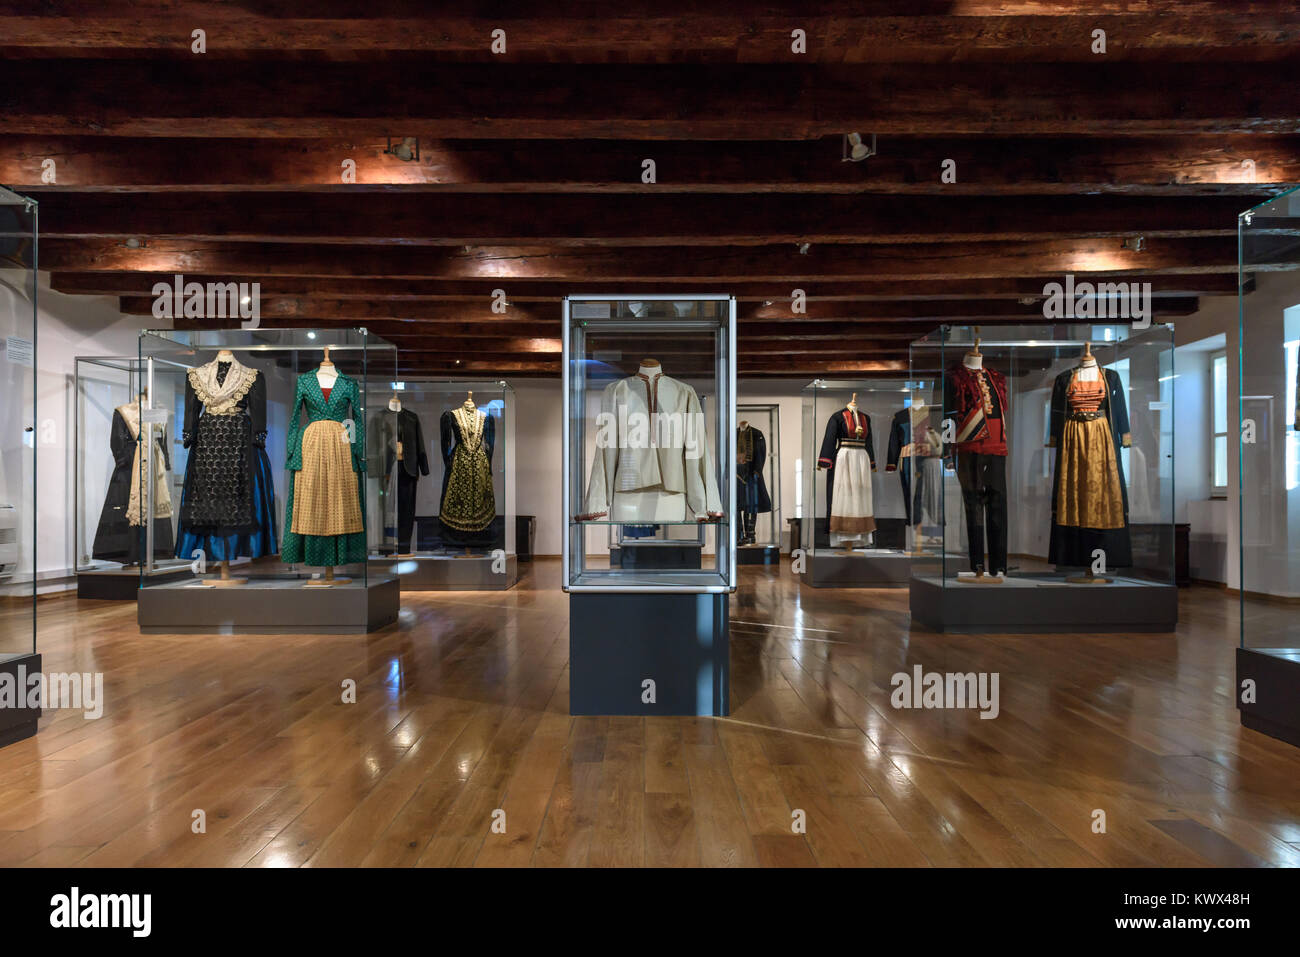 Traditional clothes display, Ethnographic Museum, Split, Croatia - Stock Image